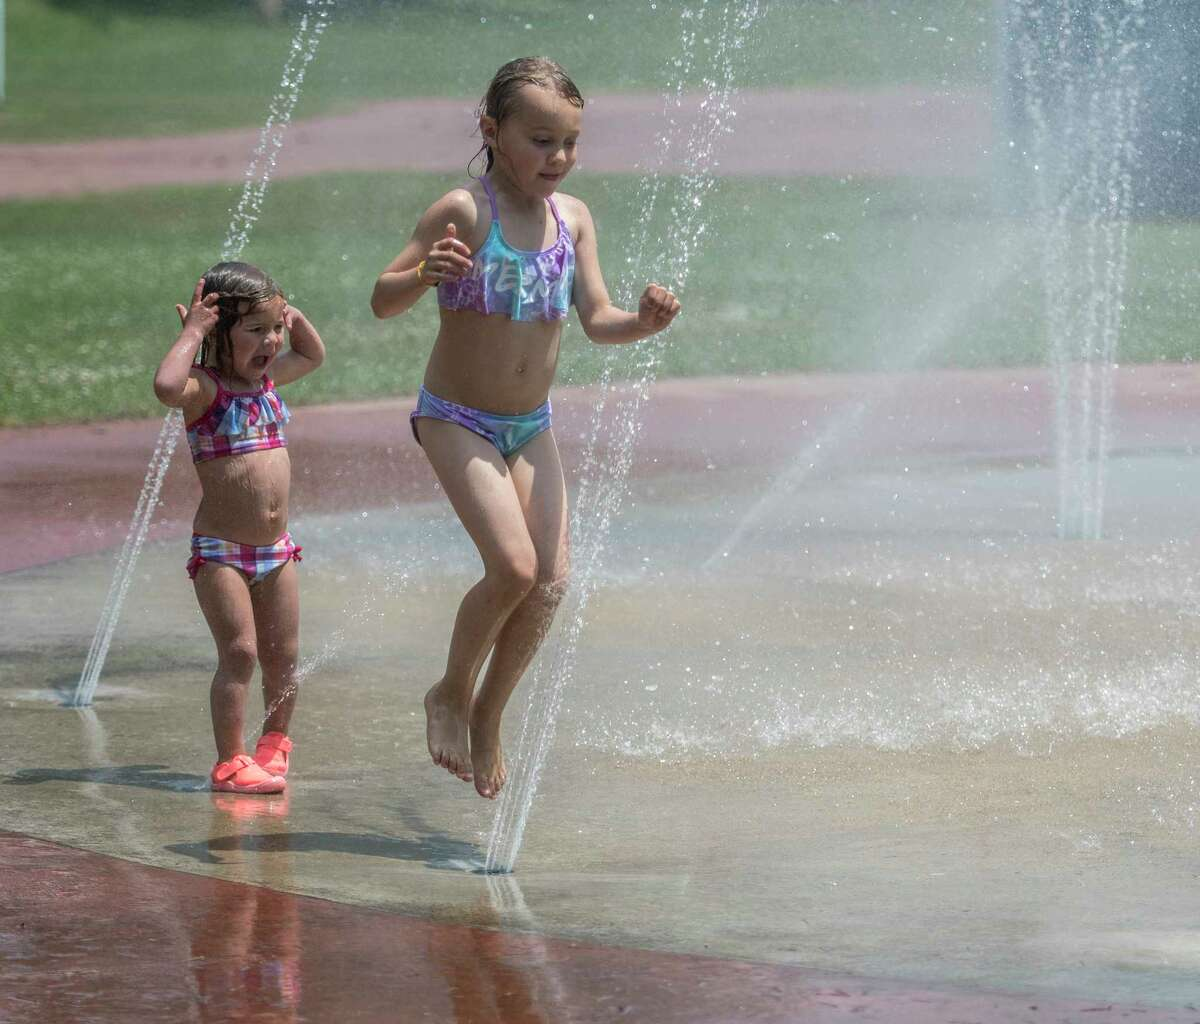 Shiela Gunderson, 7, of Lake George tries her dance steps in the spray pool at the Lake Avenue playground much to the amazement of a fellow water enthusiast Monday July 2, 2018 in Saratoga Springs, N.Y. (Skip Dickstein/Times Union)